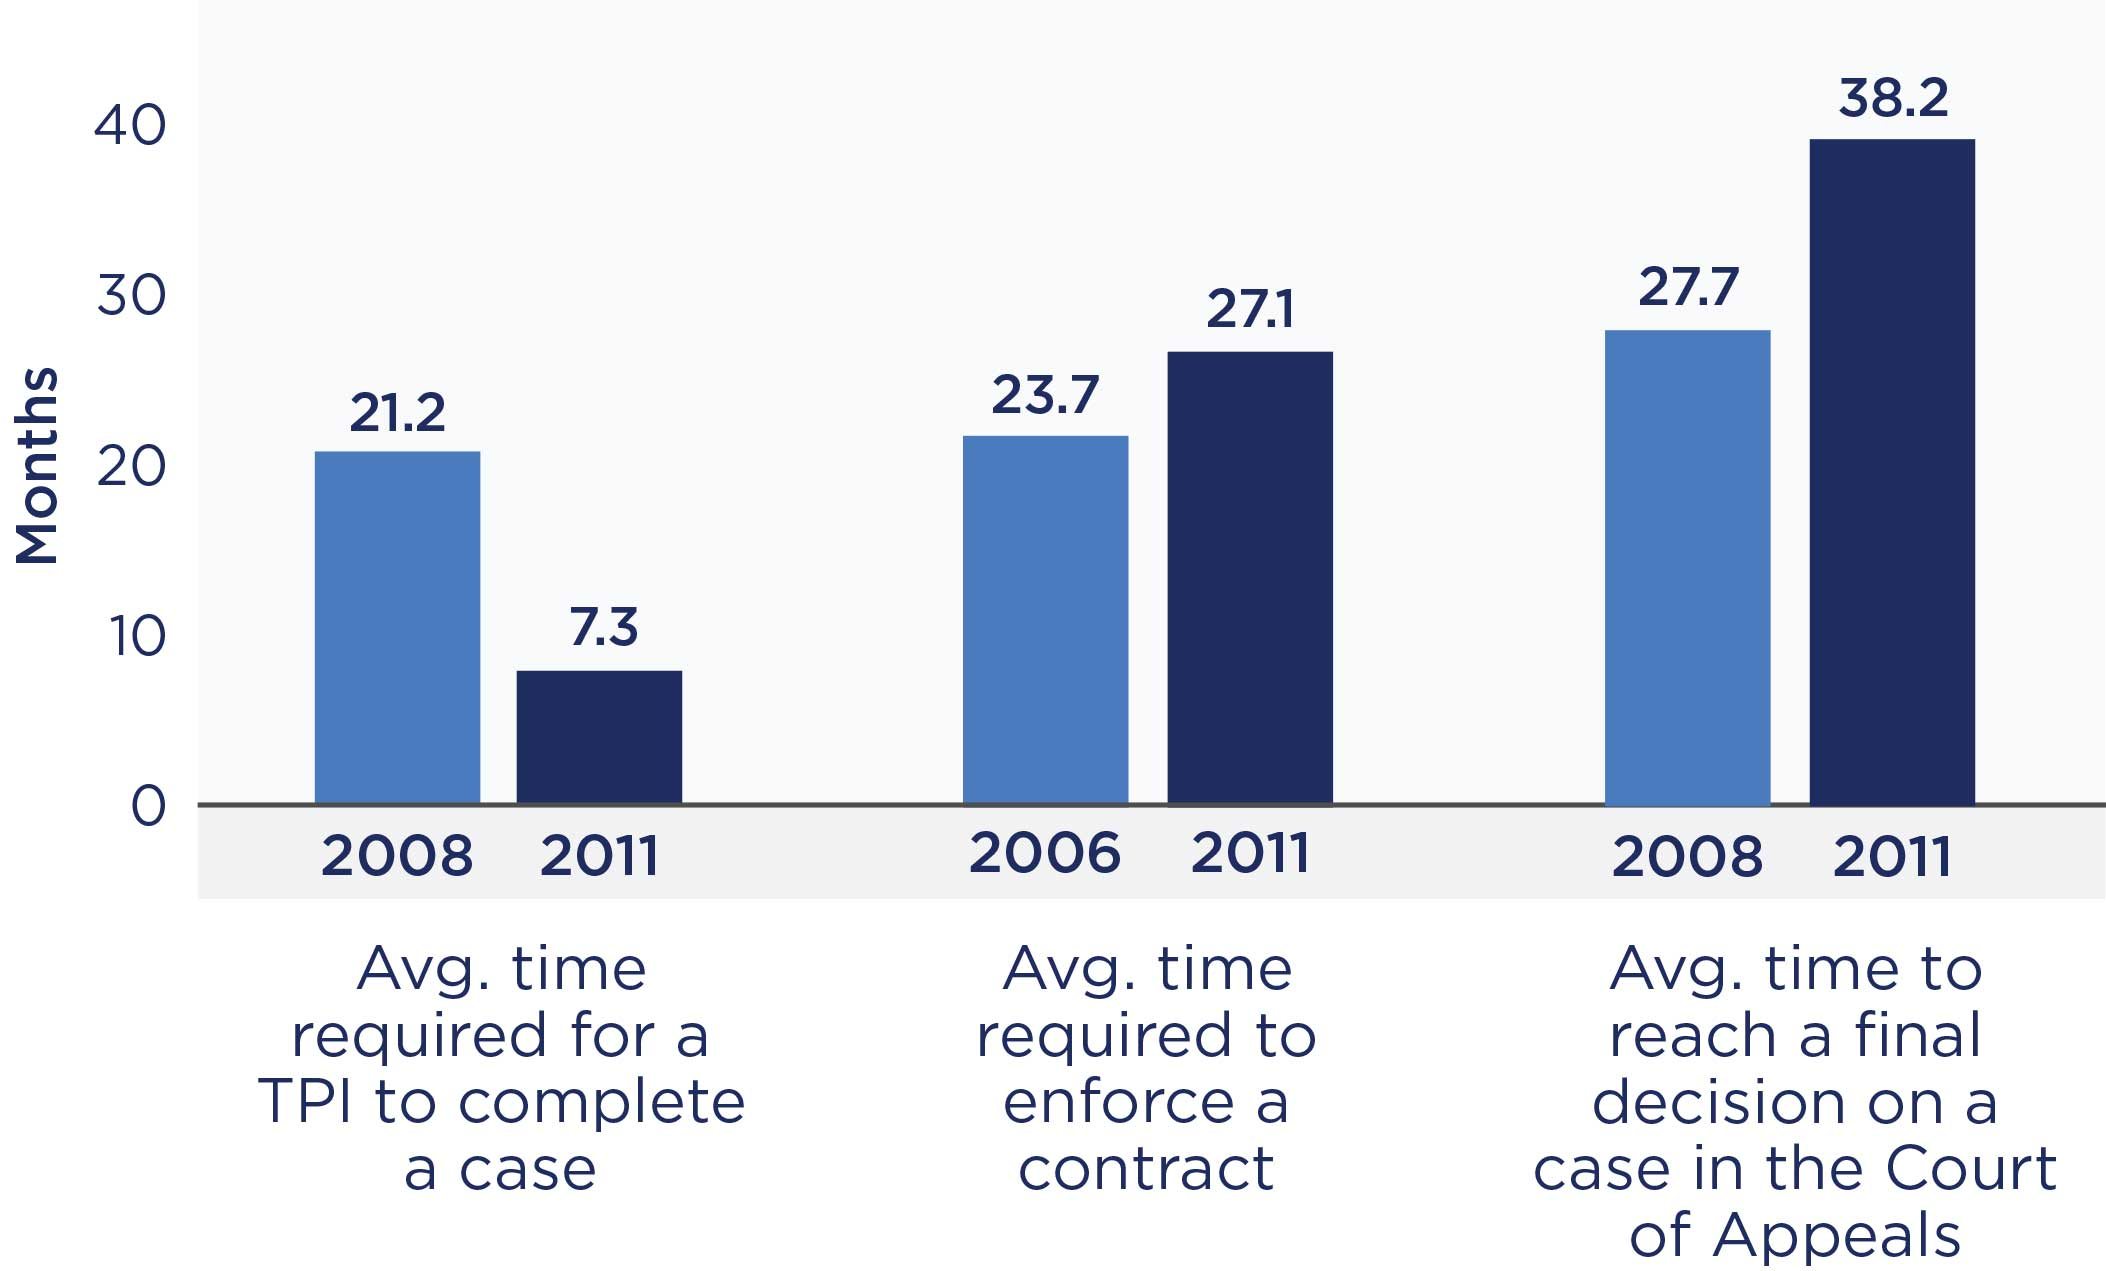 Chart of average times for court activities.